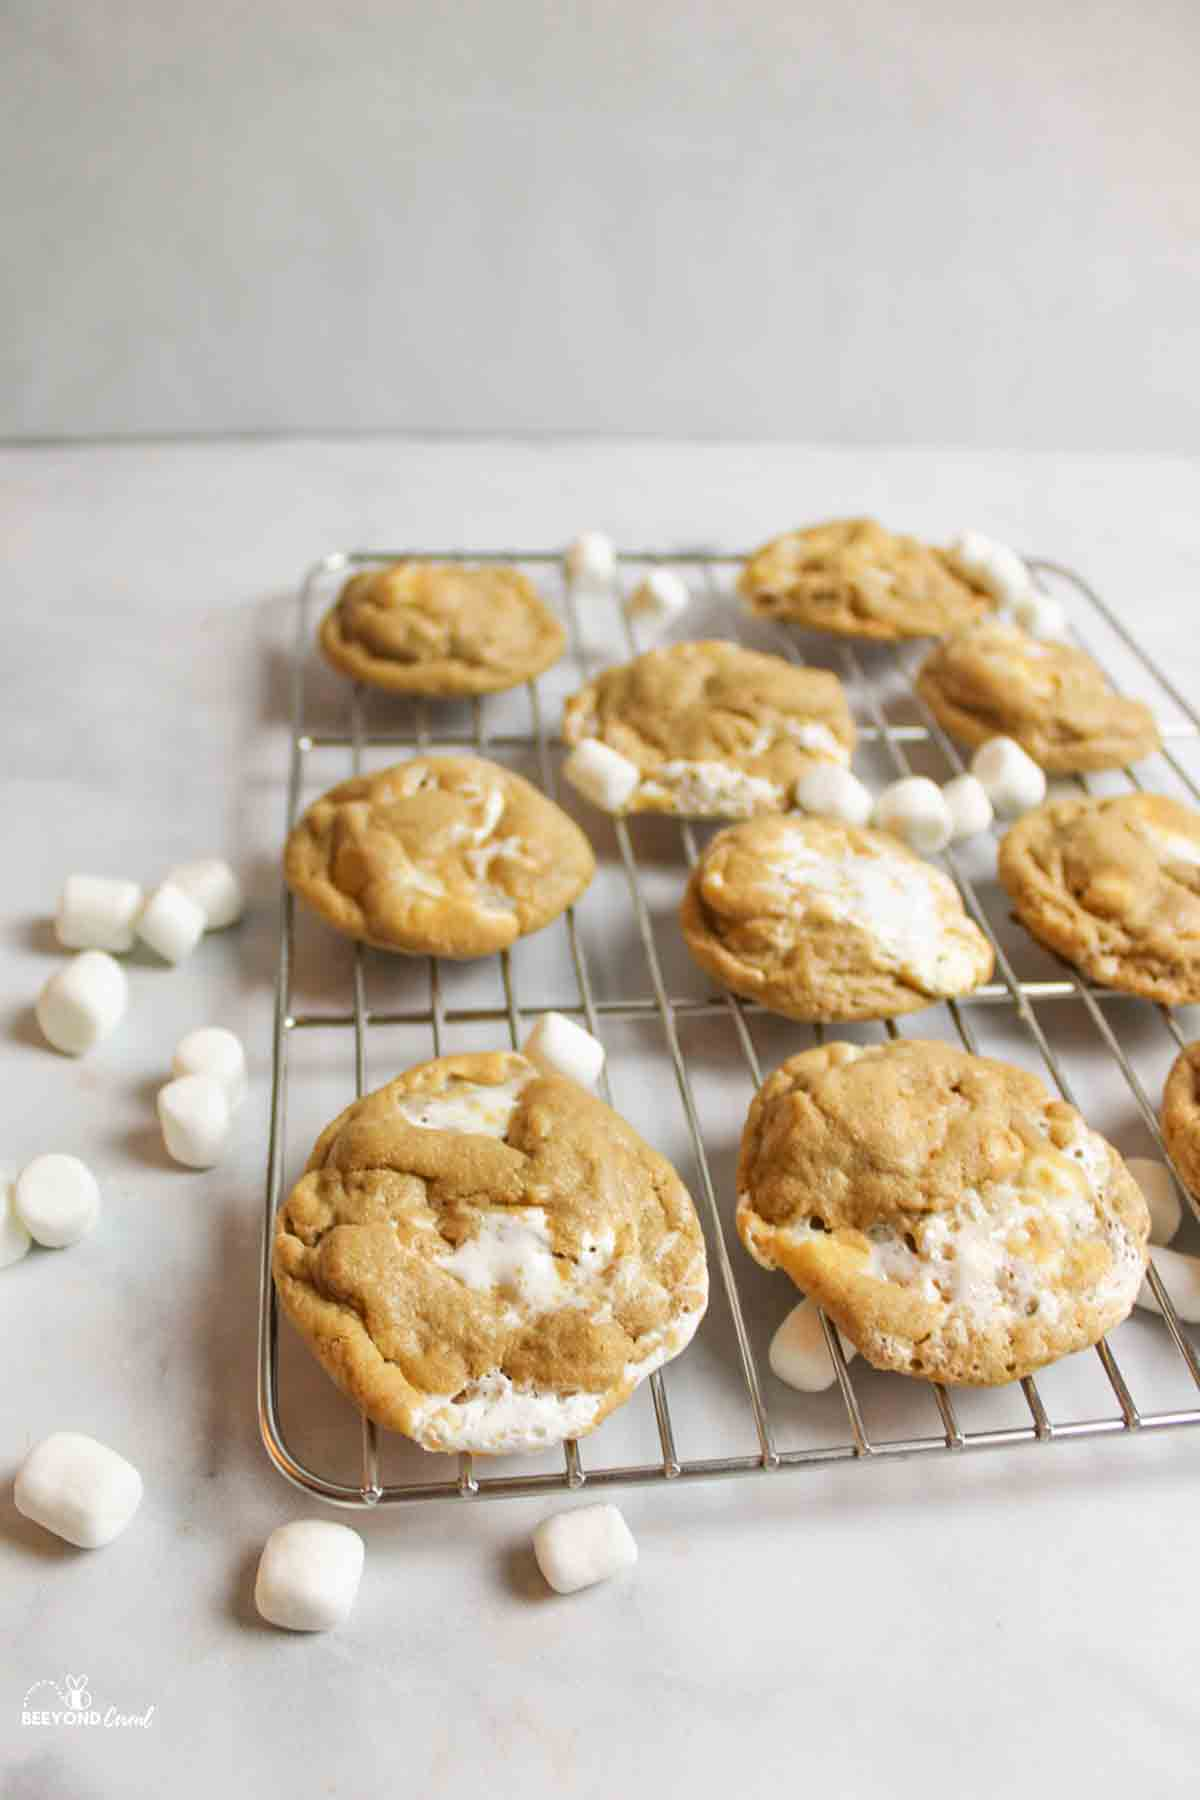 peanut butter marshmallow cookies on a wire cooling rack with mini marshmallows scattered around it